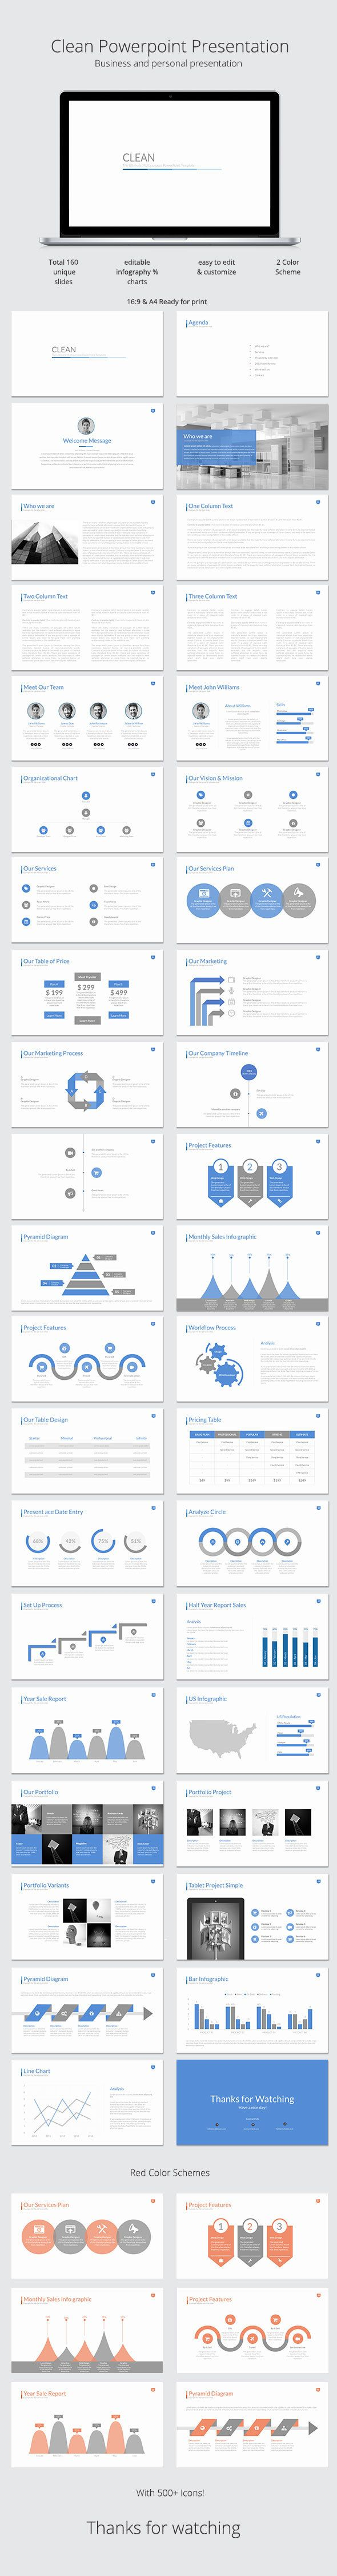 Coolmathgamesus  Marvelous  Ideas About Powerpoint Presentations On Pinterest With Entrancing Clean Powerpoint Template With Delectable World History Patterns Of Interaction Powerpoint Also Good Powerpoint Presentation Topics In Addition Powerpoint Trivia Games And Infographic In Powerpoint As Well As Wedding Powerpoint Template Additionally How To Add Youtube Video In Powerpoint From Pinterestcom With Coolmathgamesus  Entrancing  Ideas About Powerpoint Presentations On Pinterest With Delectable Clean Powerpoint Template And Marvelous World History Patterns Of Interaction Powerpoint Also Good Powerpoint Presentation Topics In Addition Powerpoint Trivia Games From Pinterestcom